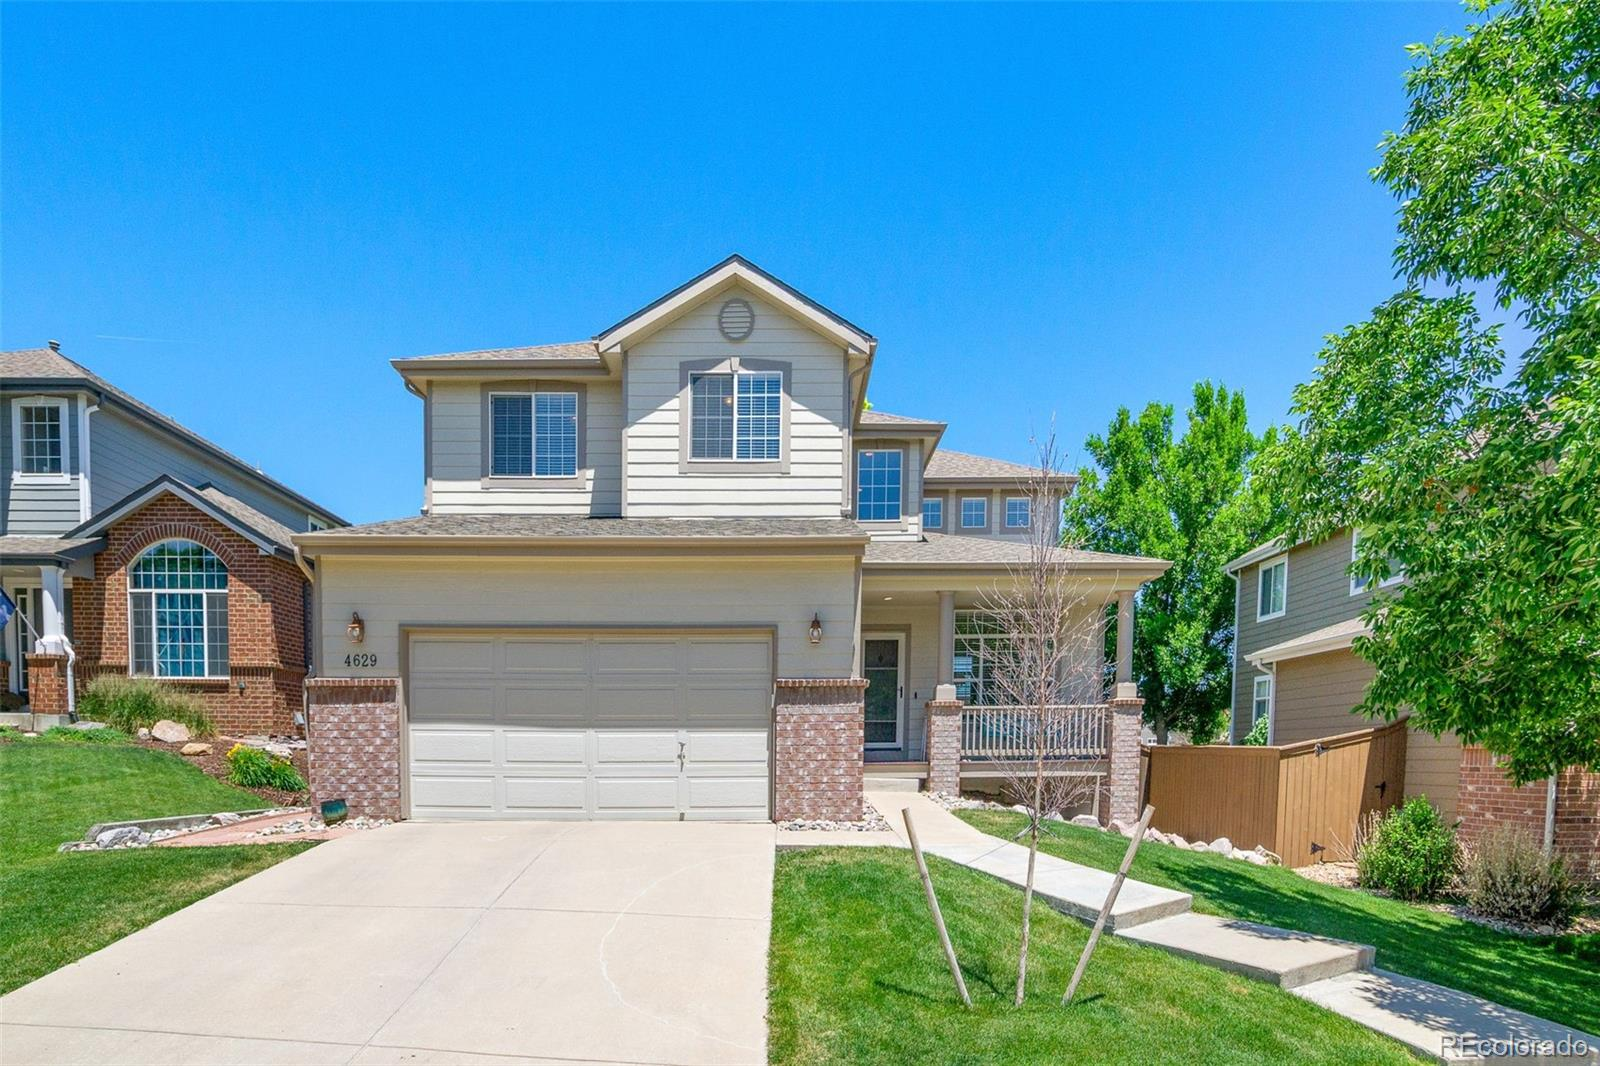 4629 Whitehall Lane Property Photo - Highlands Ranch, CO real estate listing